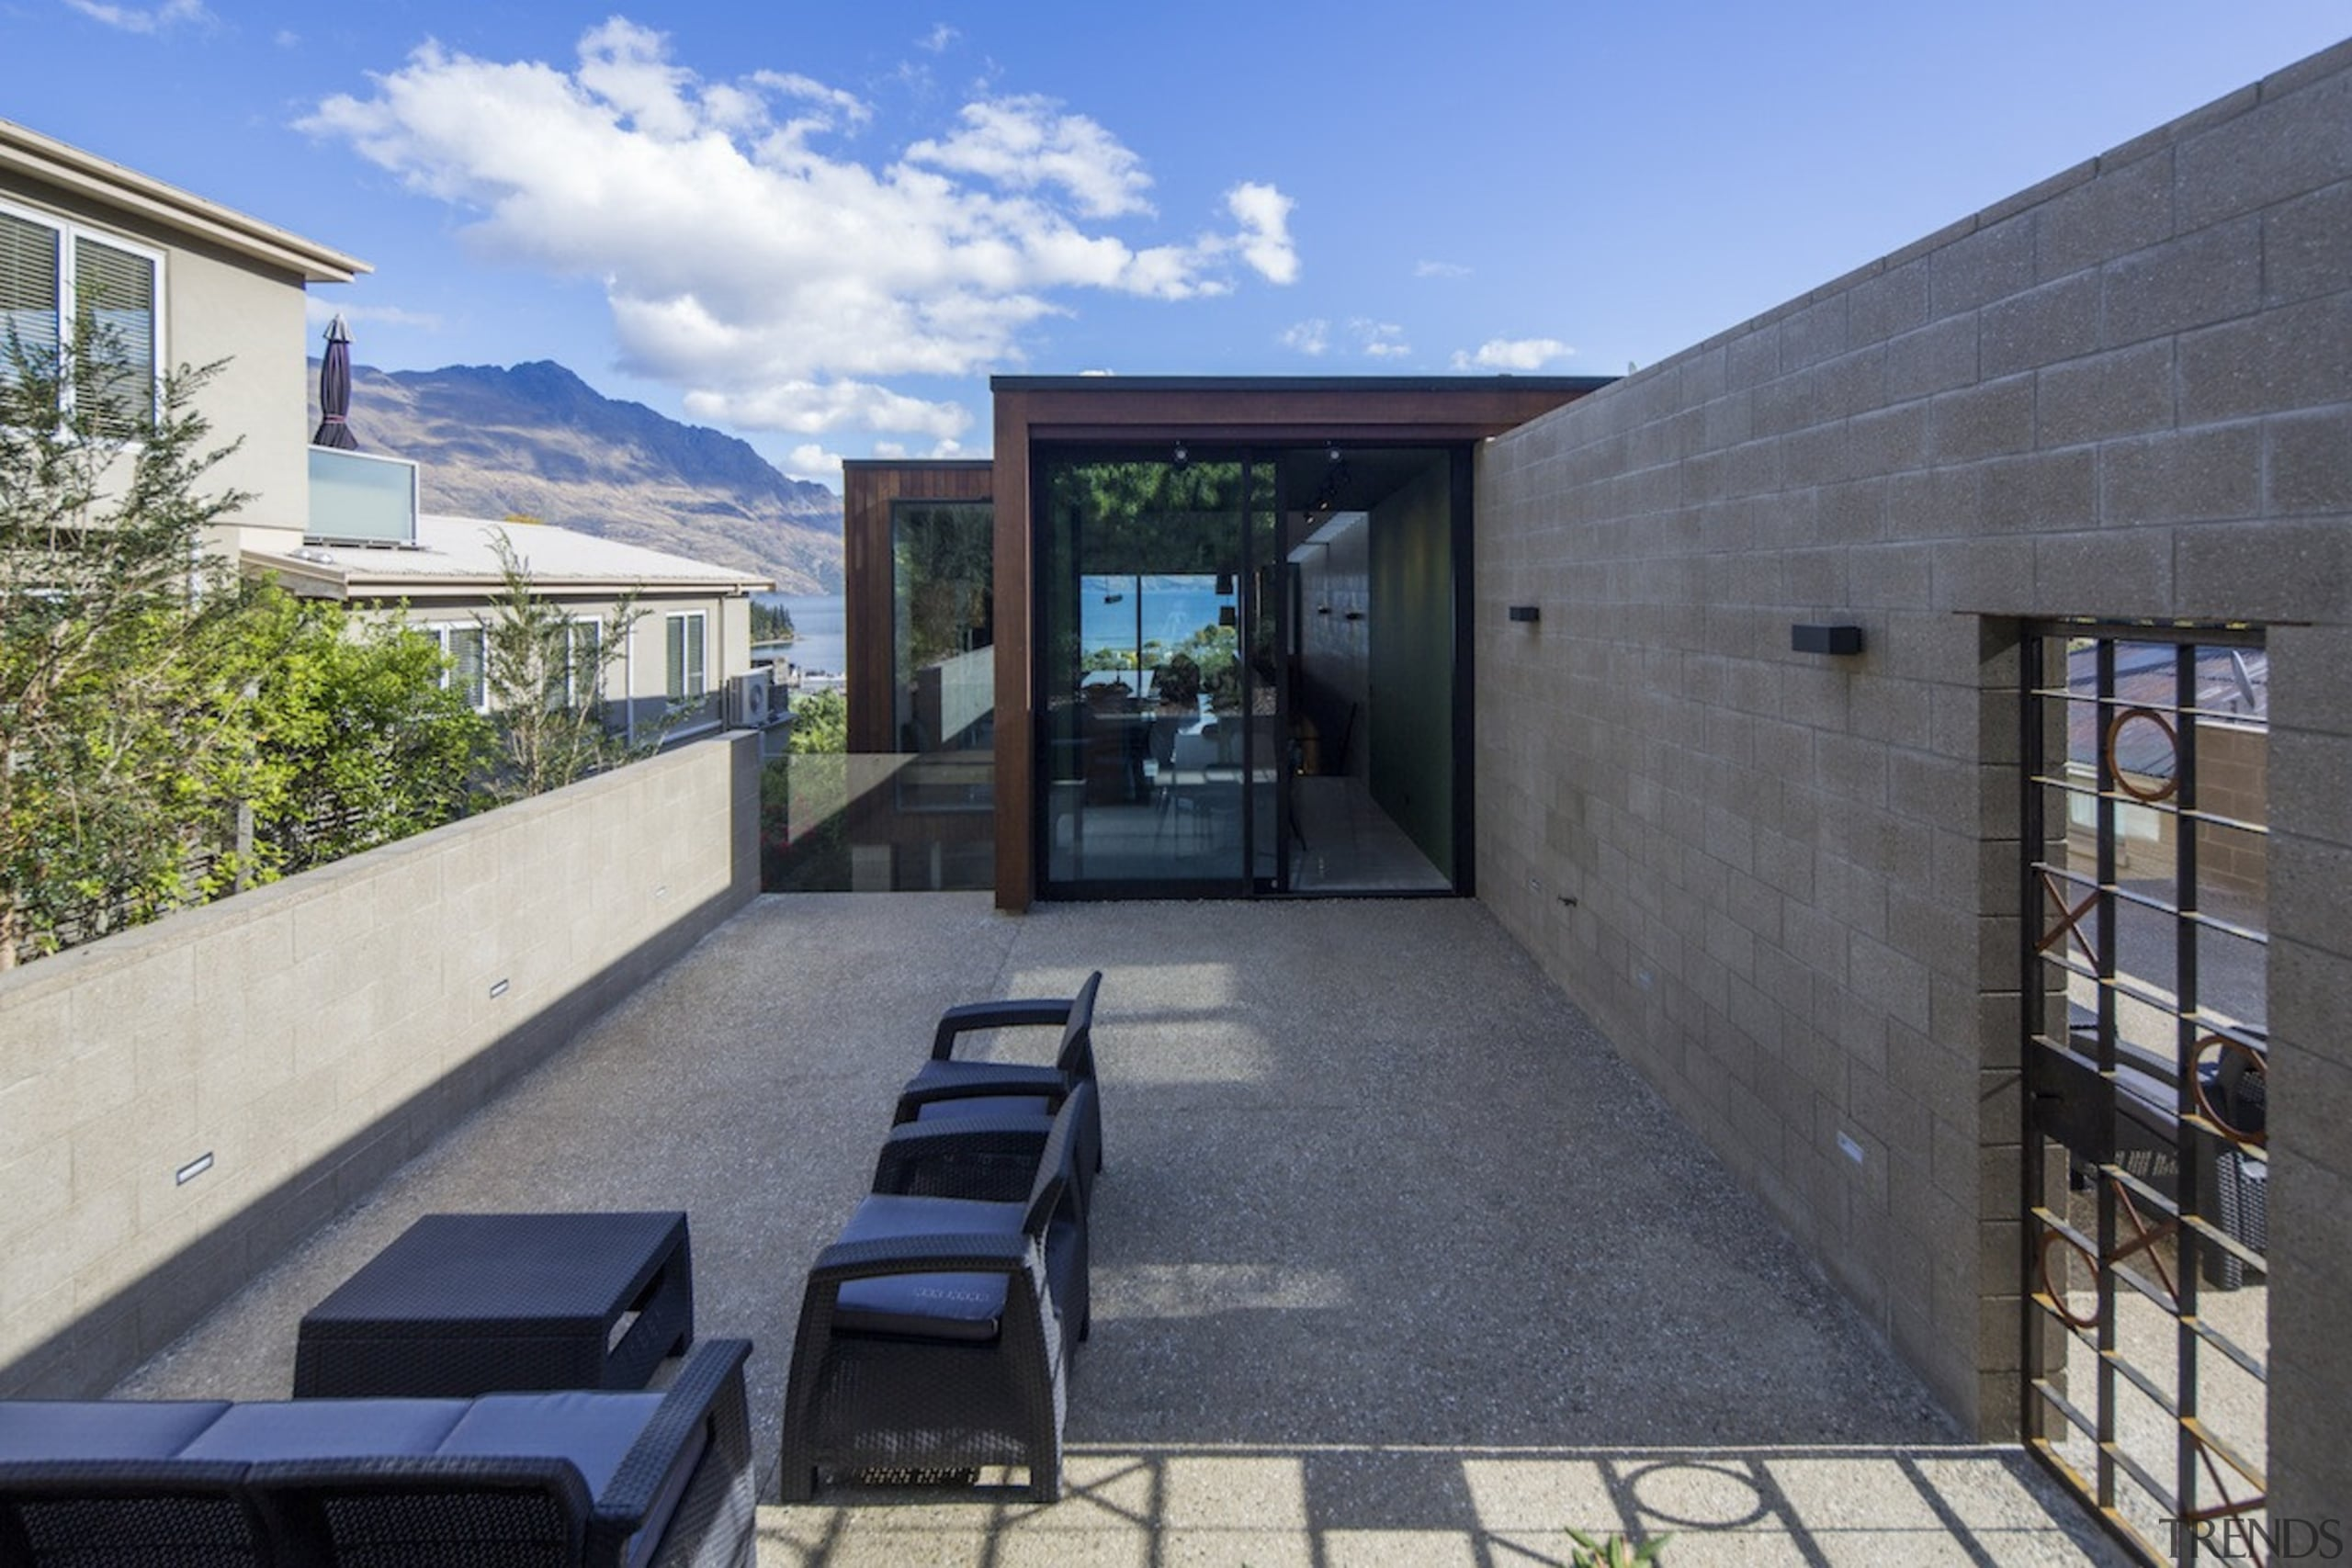 Arrowtown-based Bennie Builders was the only Southern Lakes architecture, house, real estate, gray